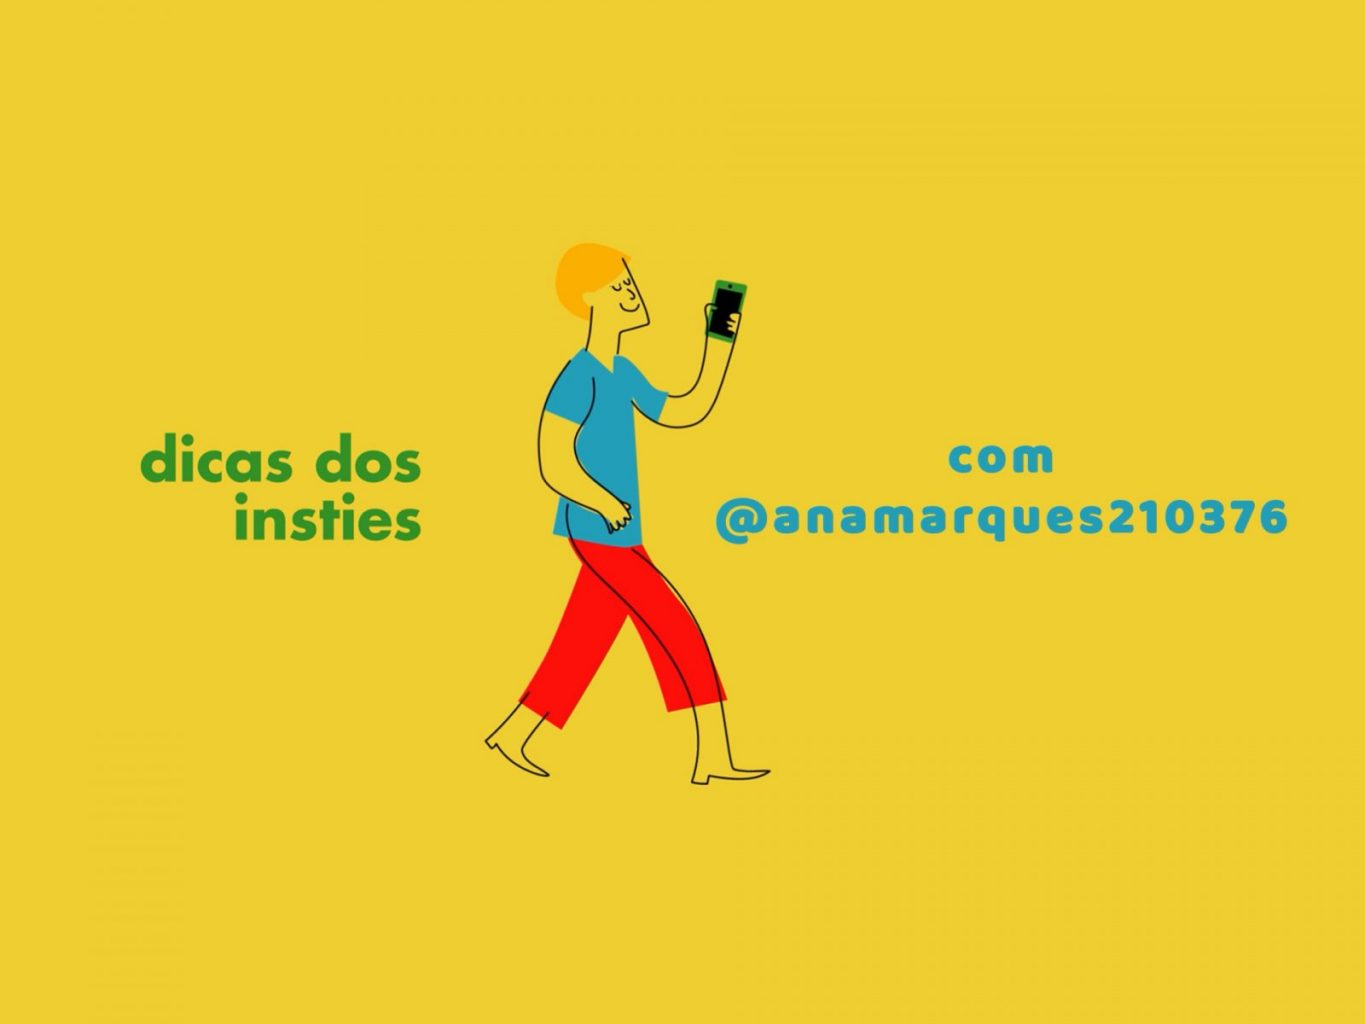 dicas-insties-anamarques210376